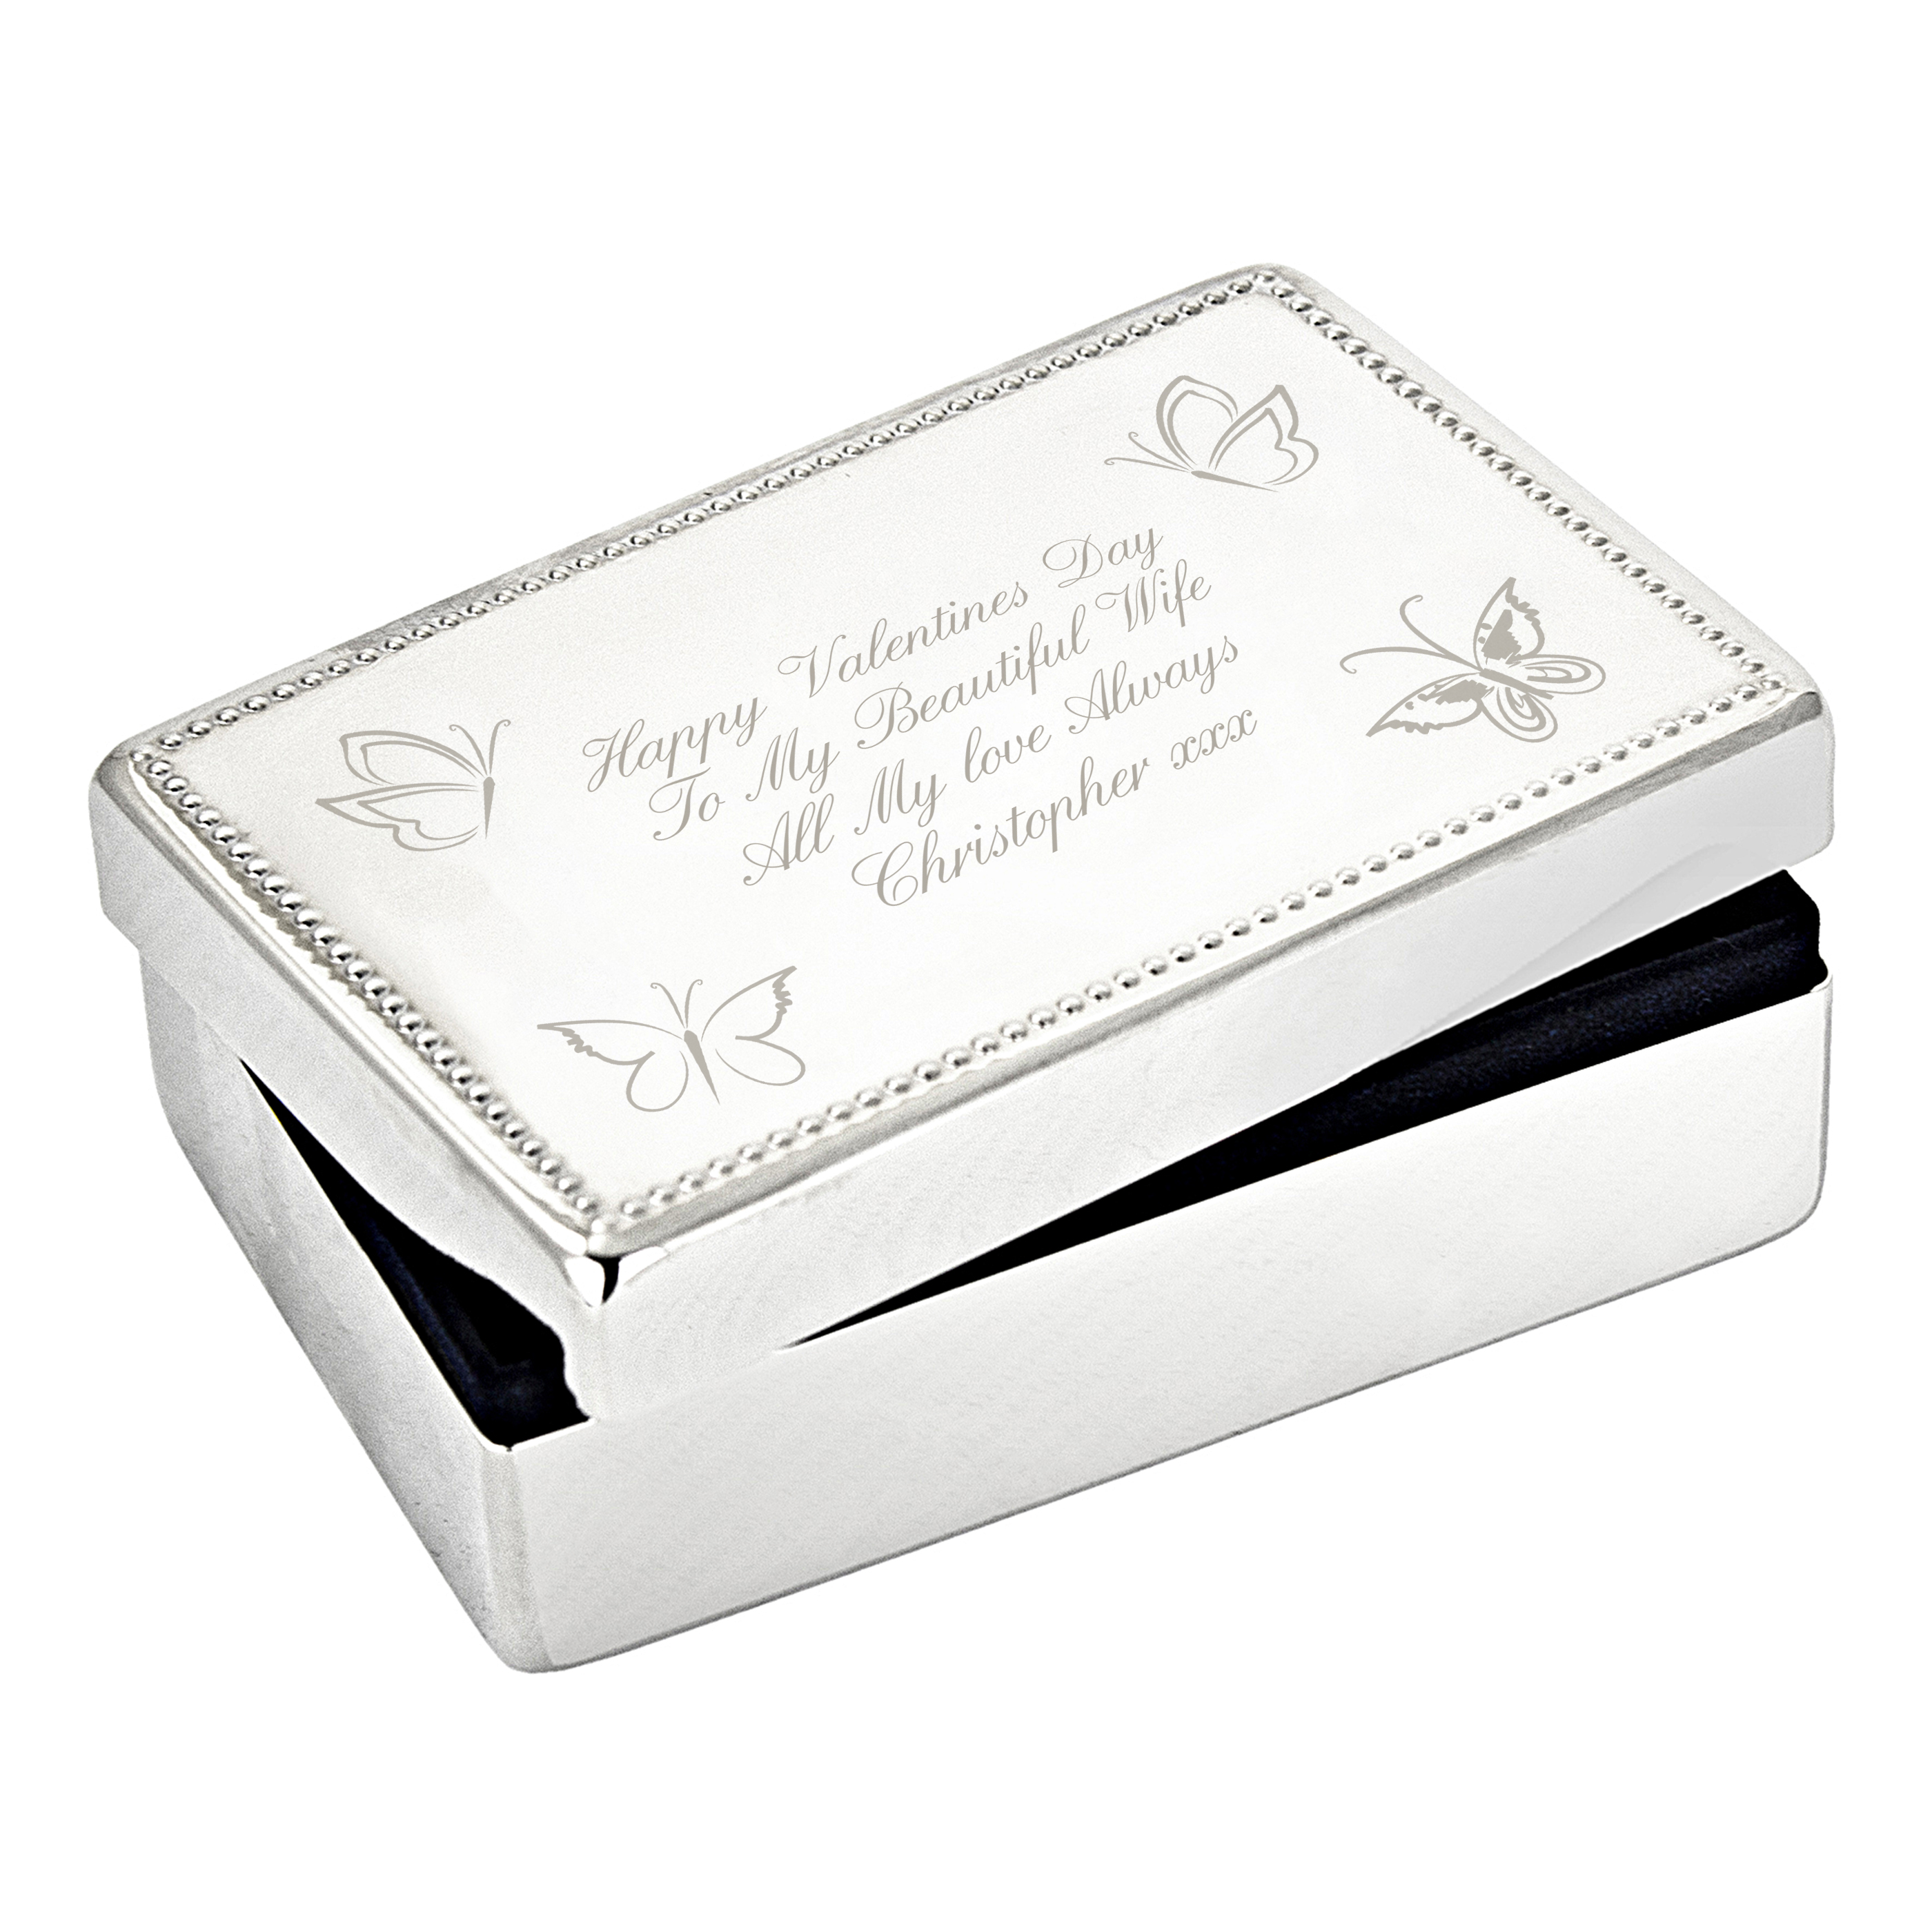 Engraved Jewellery Box